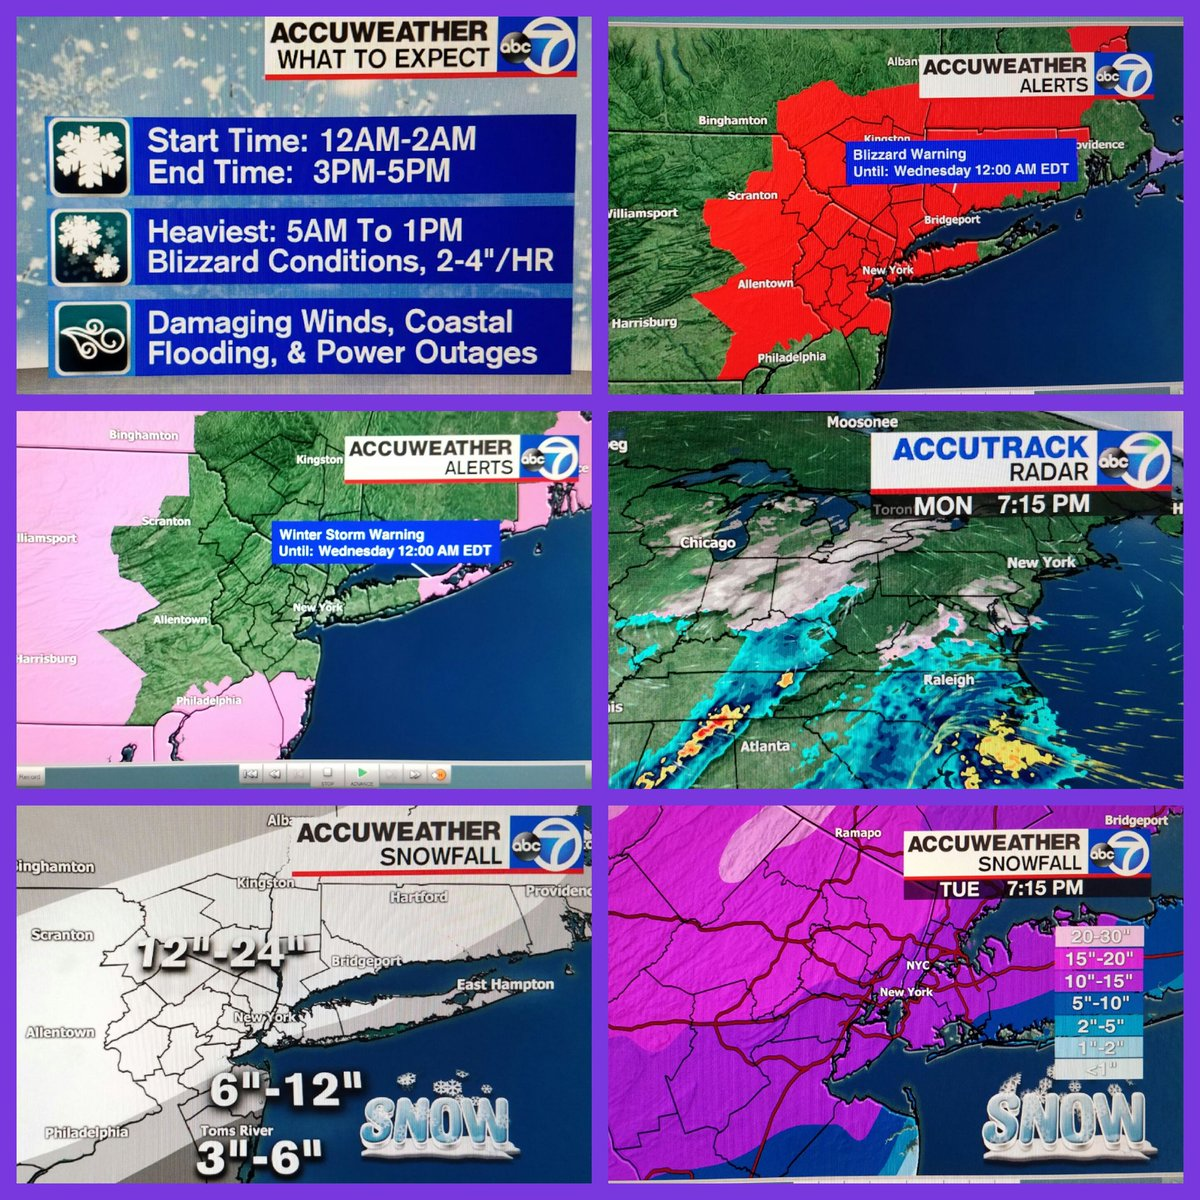 Evening Update Huge Range In Totals Near Nyc Could Be From - Accuweather brooklyn